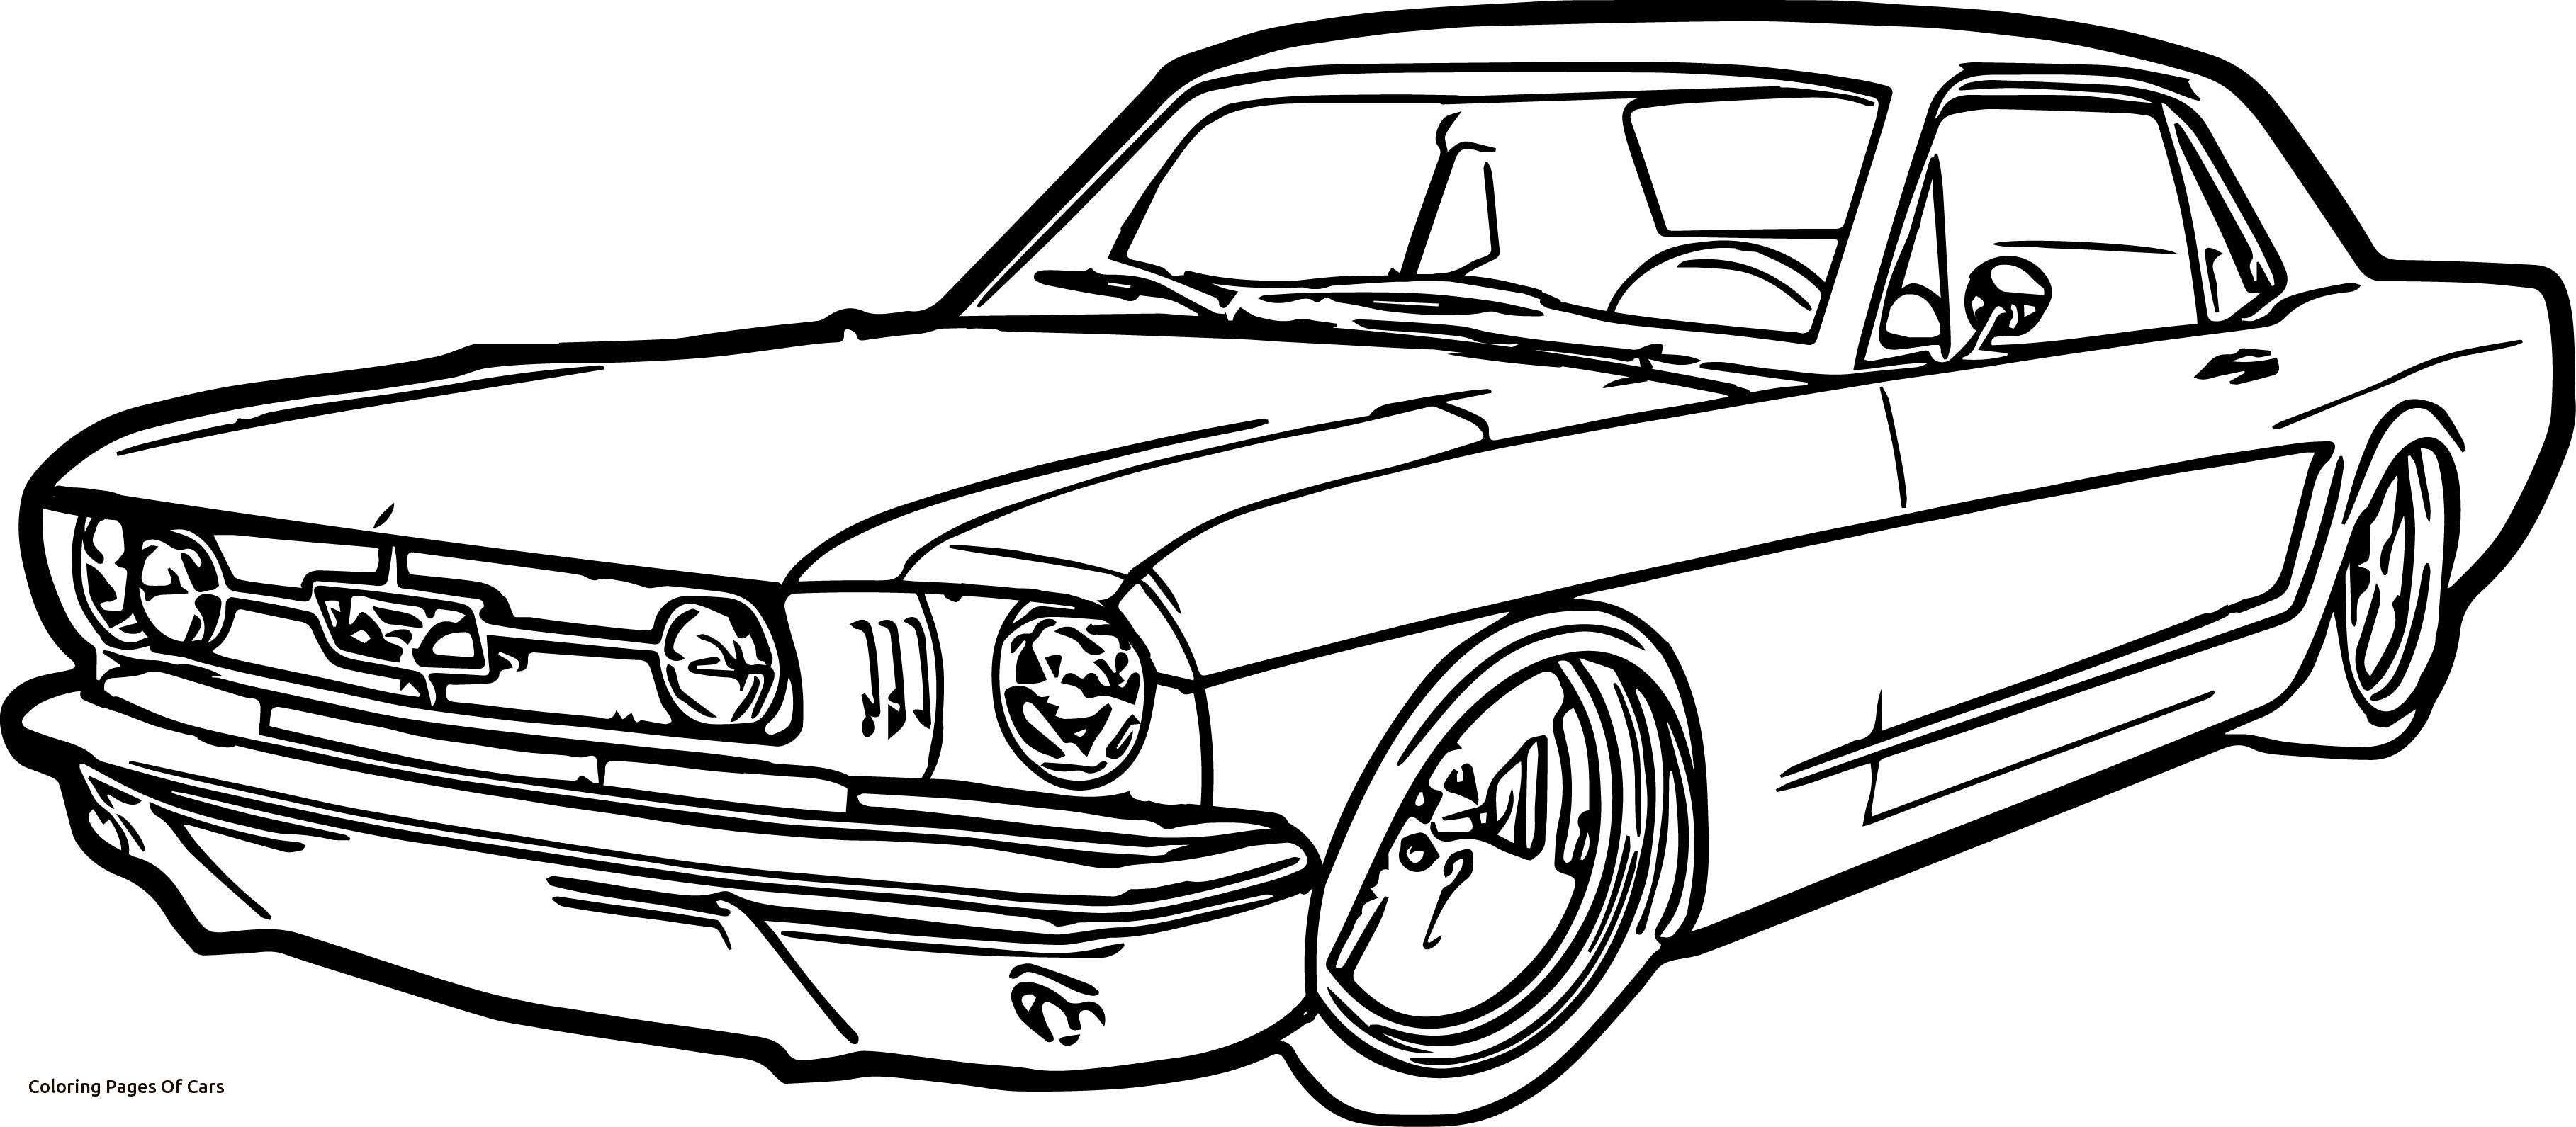 Fox Body Mustang Drawing At Getdrawings